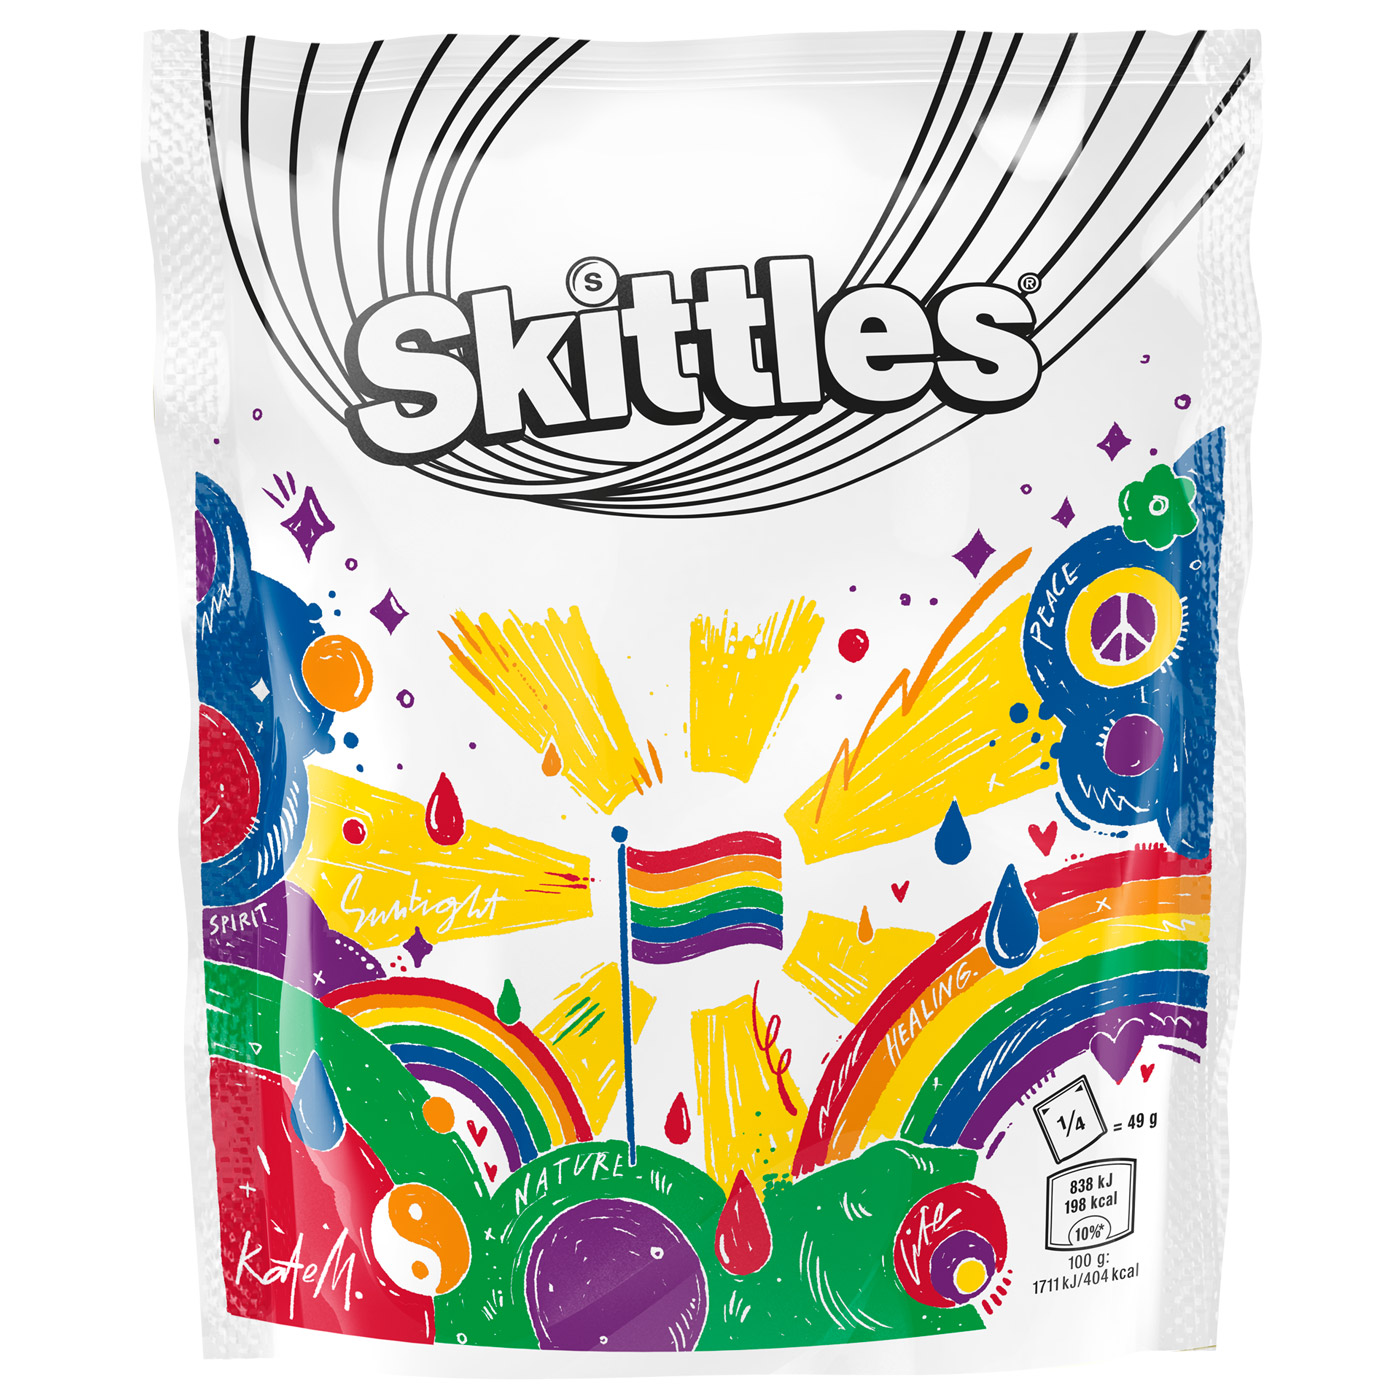 Straight Forward Skittles Pride 2019 Limited edition packaging: Packaging Design with Kate Moross